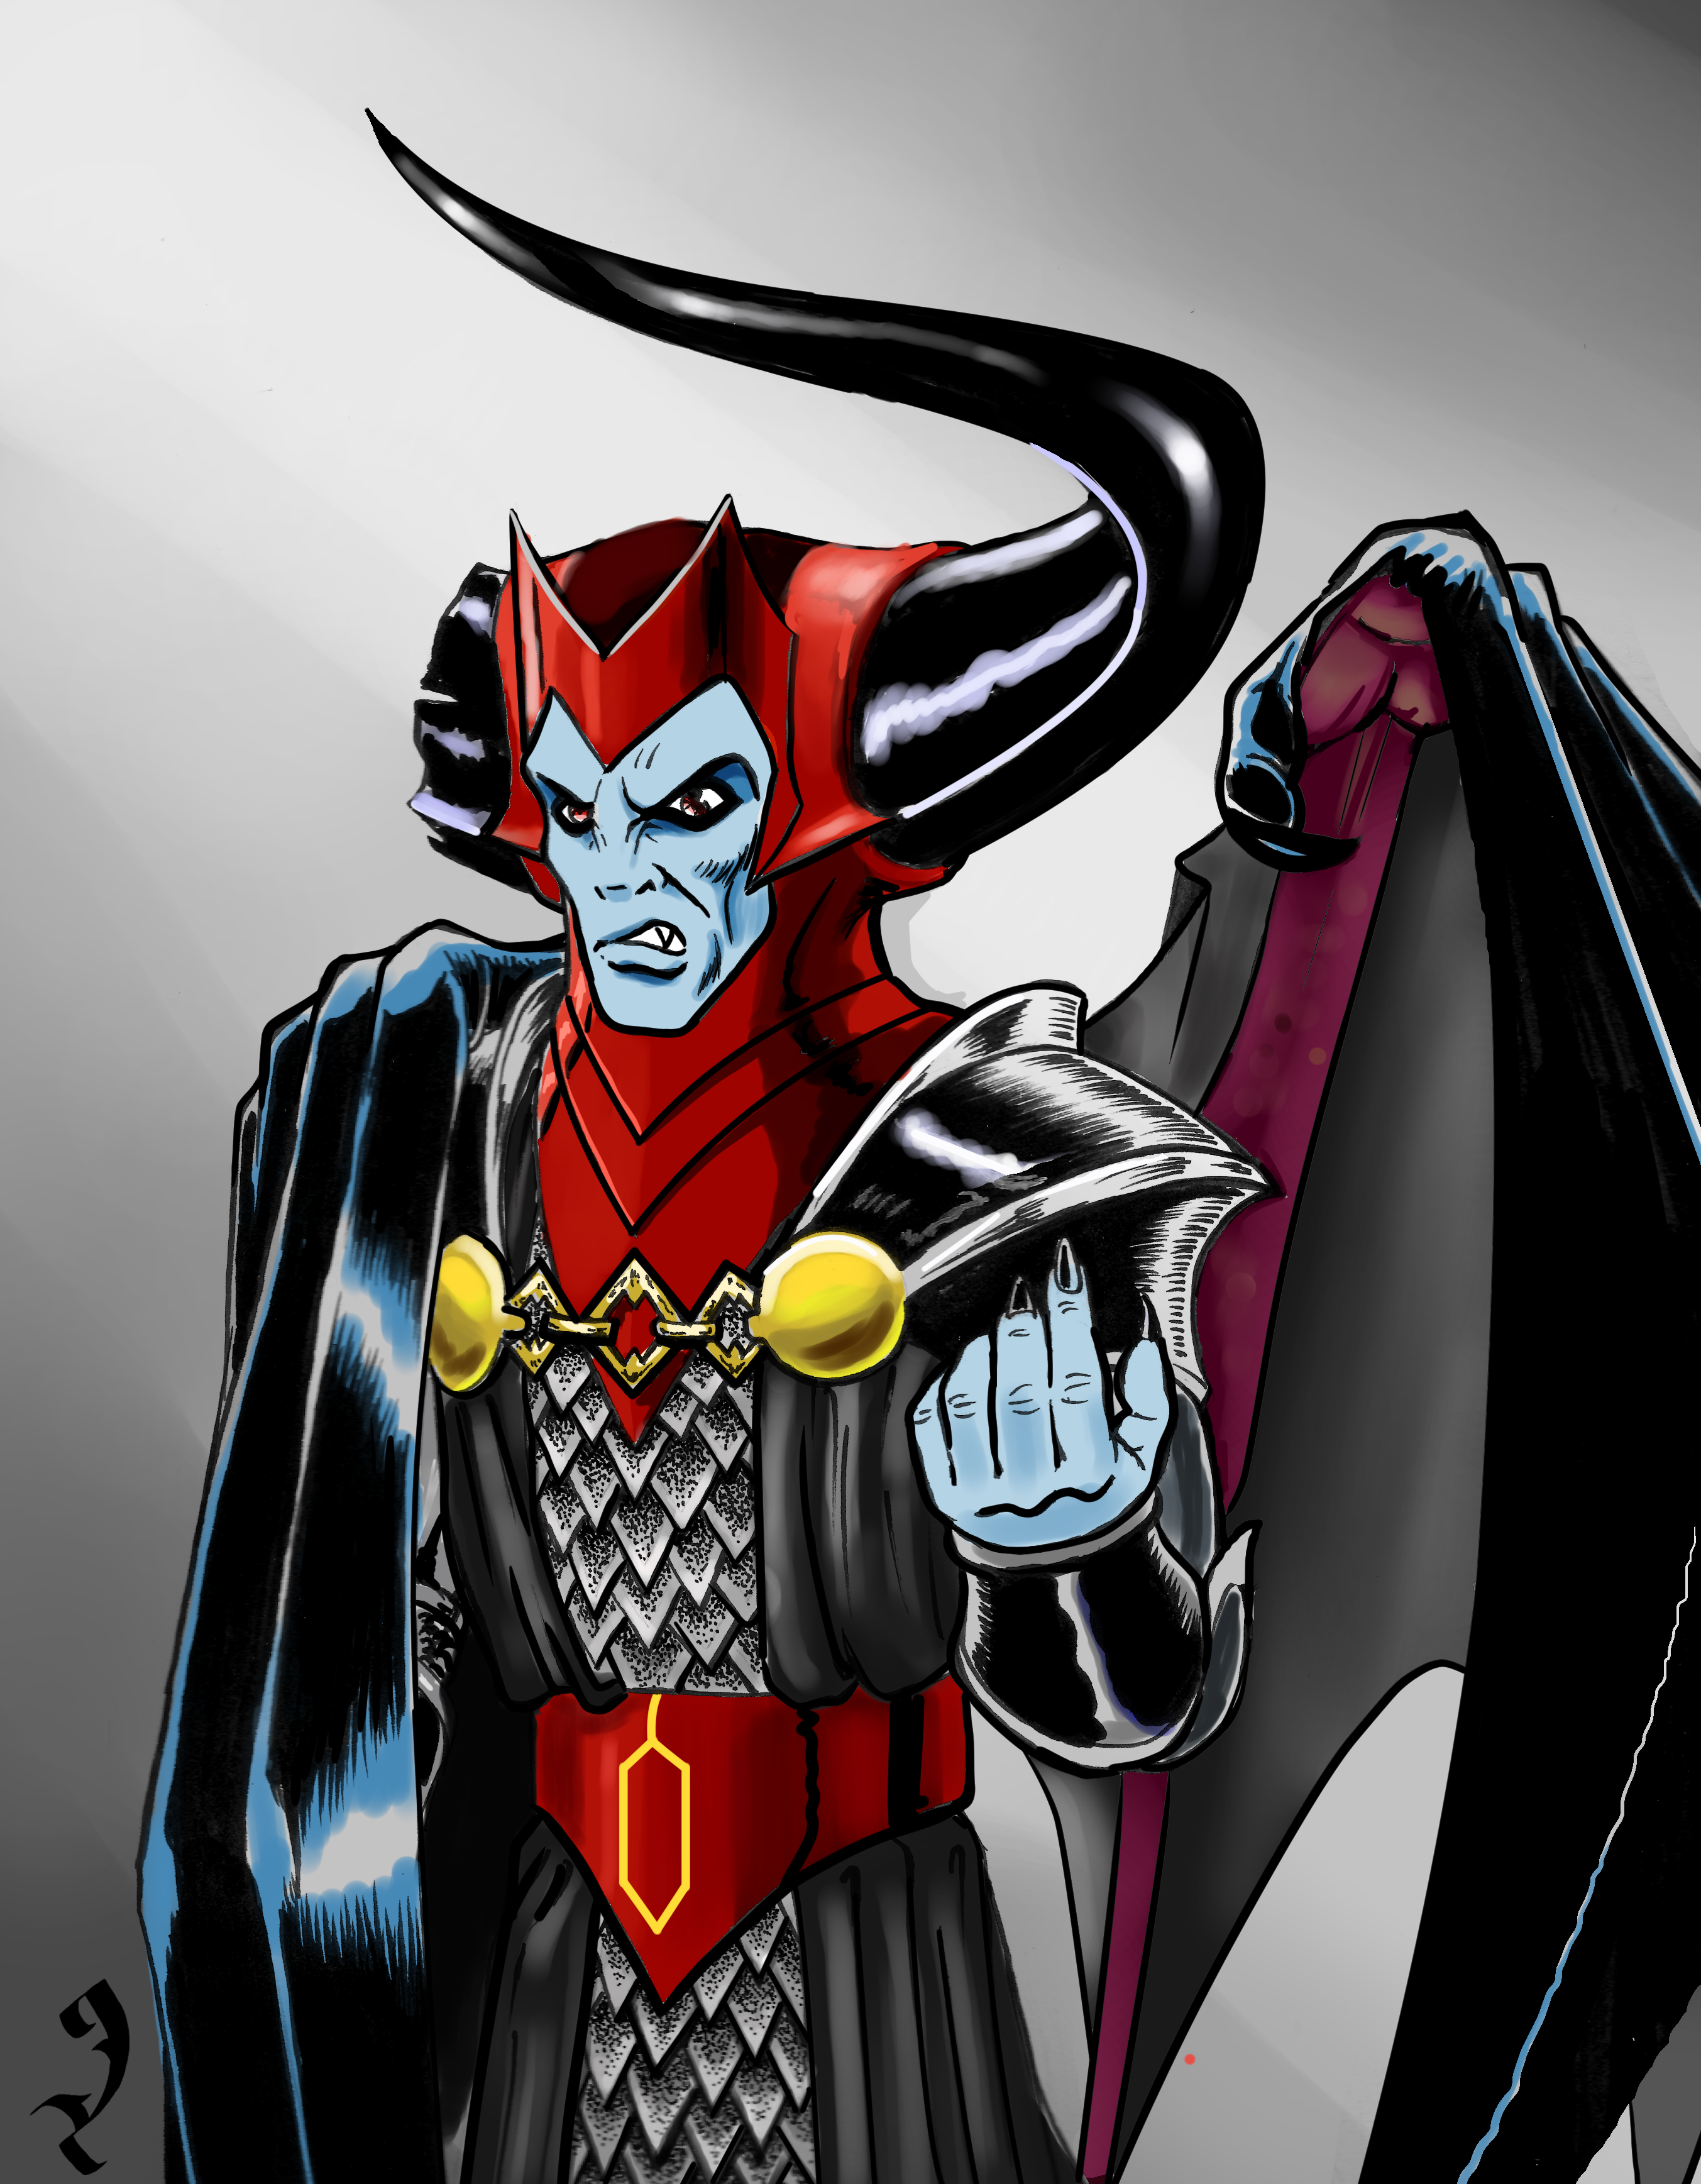 heroes amp villains venger from the dampd cartoon in the 80